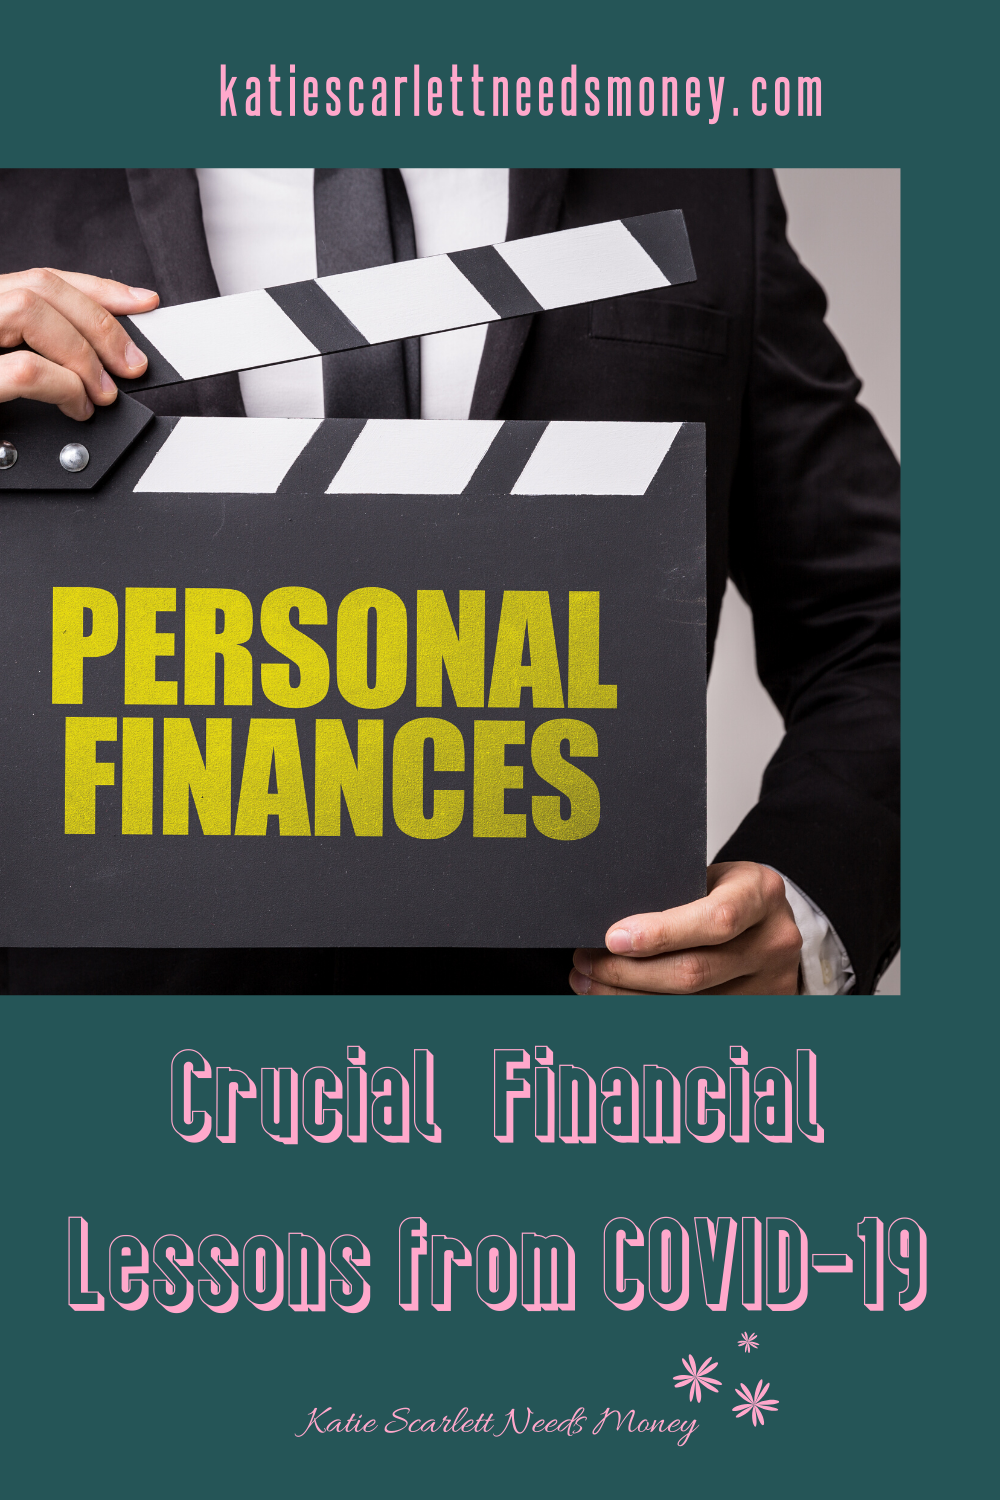 Crucial Financial Lessons from COVID-19